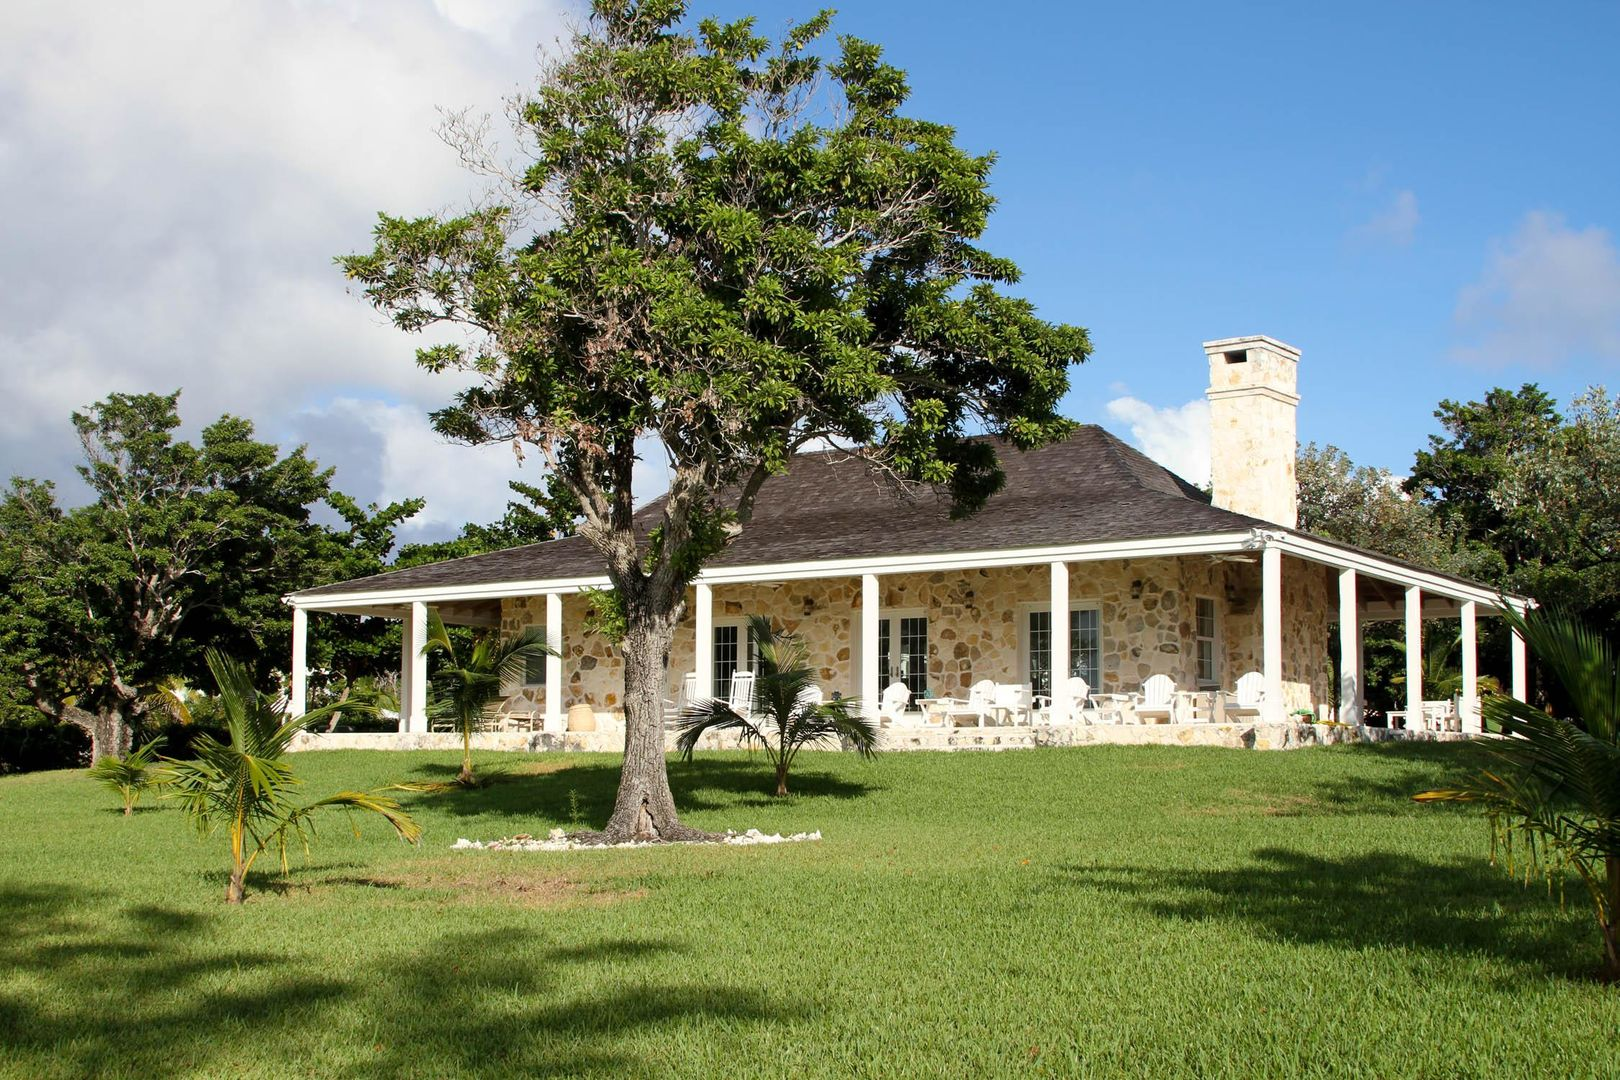 Coconut Ranch – Harbour Island Villa Rental | Narrows ... on tally-ho plantation house, lowcountry house, avondale plantation home, chatchie plantation house, cashpoint plantation house, swamp house, arlington plantation house, victorian house, palo alto plantation, antebellum house, siesta key house, movie house, longue vue house and gardens, colonial house, pleasant view plantation house, bungalow house, cape cod house, hollywood house, saltbox house, enterprise plantation, weston house, calumet plantation house, old house, chateau house, laurel valley sugar plantation, southern house, country house, beach house, harlem plantation house, mary plantation house, white hall plantation house, burning house, mount hope plantation house, crescent plantation, ardoyne plantation house, louvered house, breston plantation house, key west house, montrose plantation house, buckmeadow plantation house,